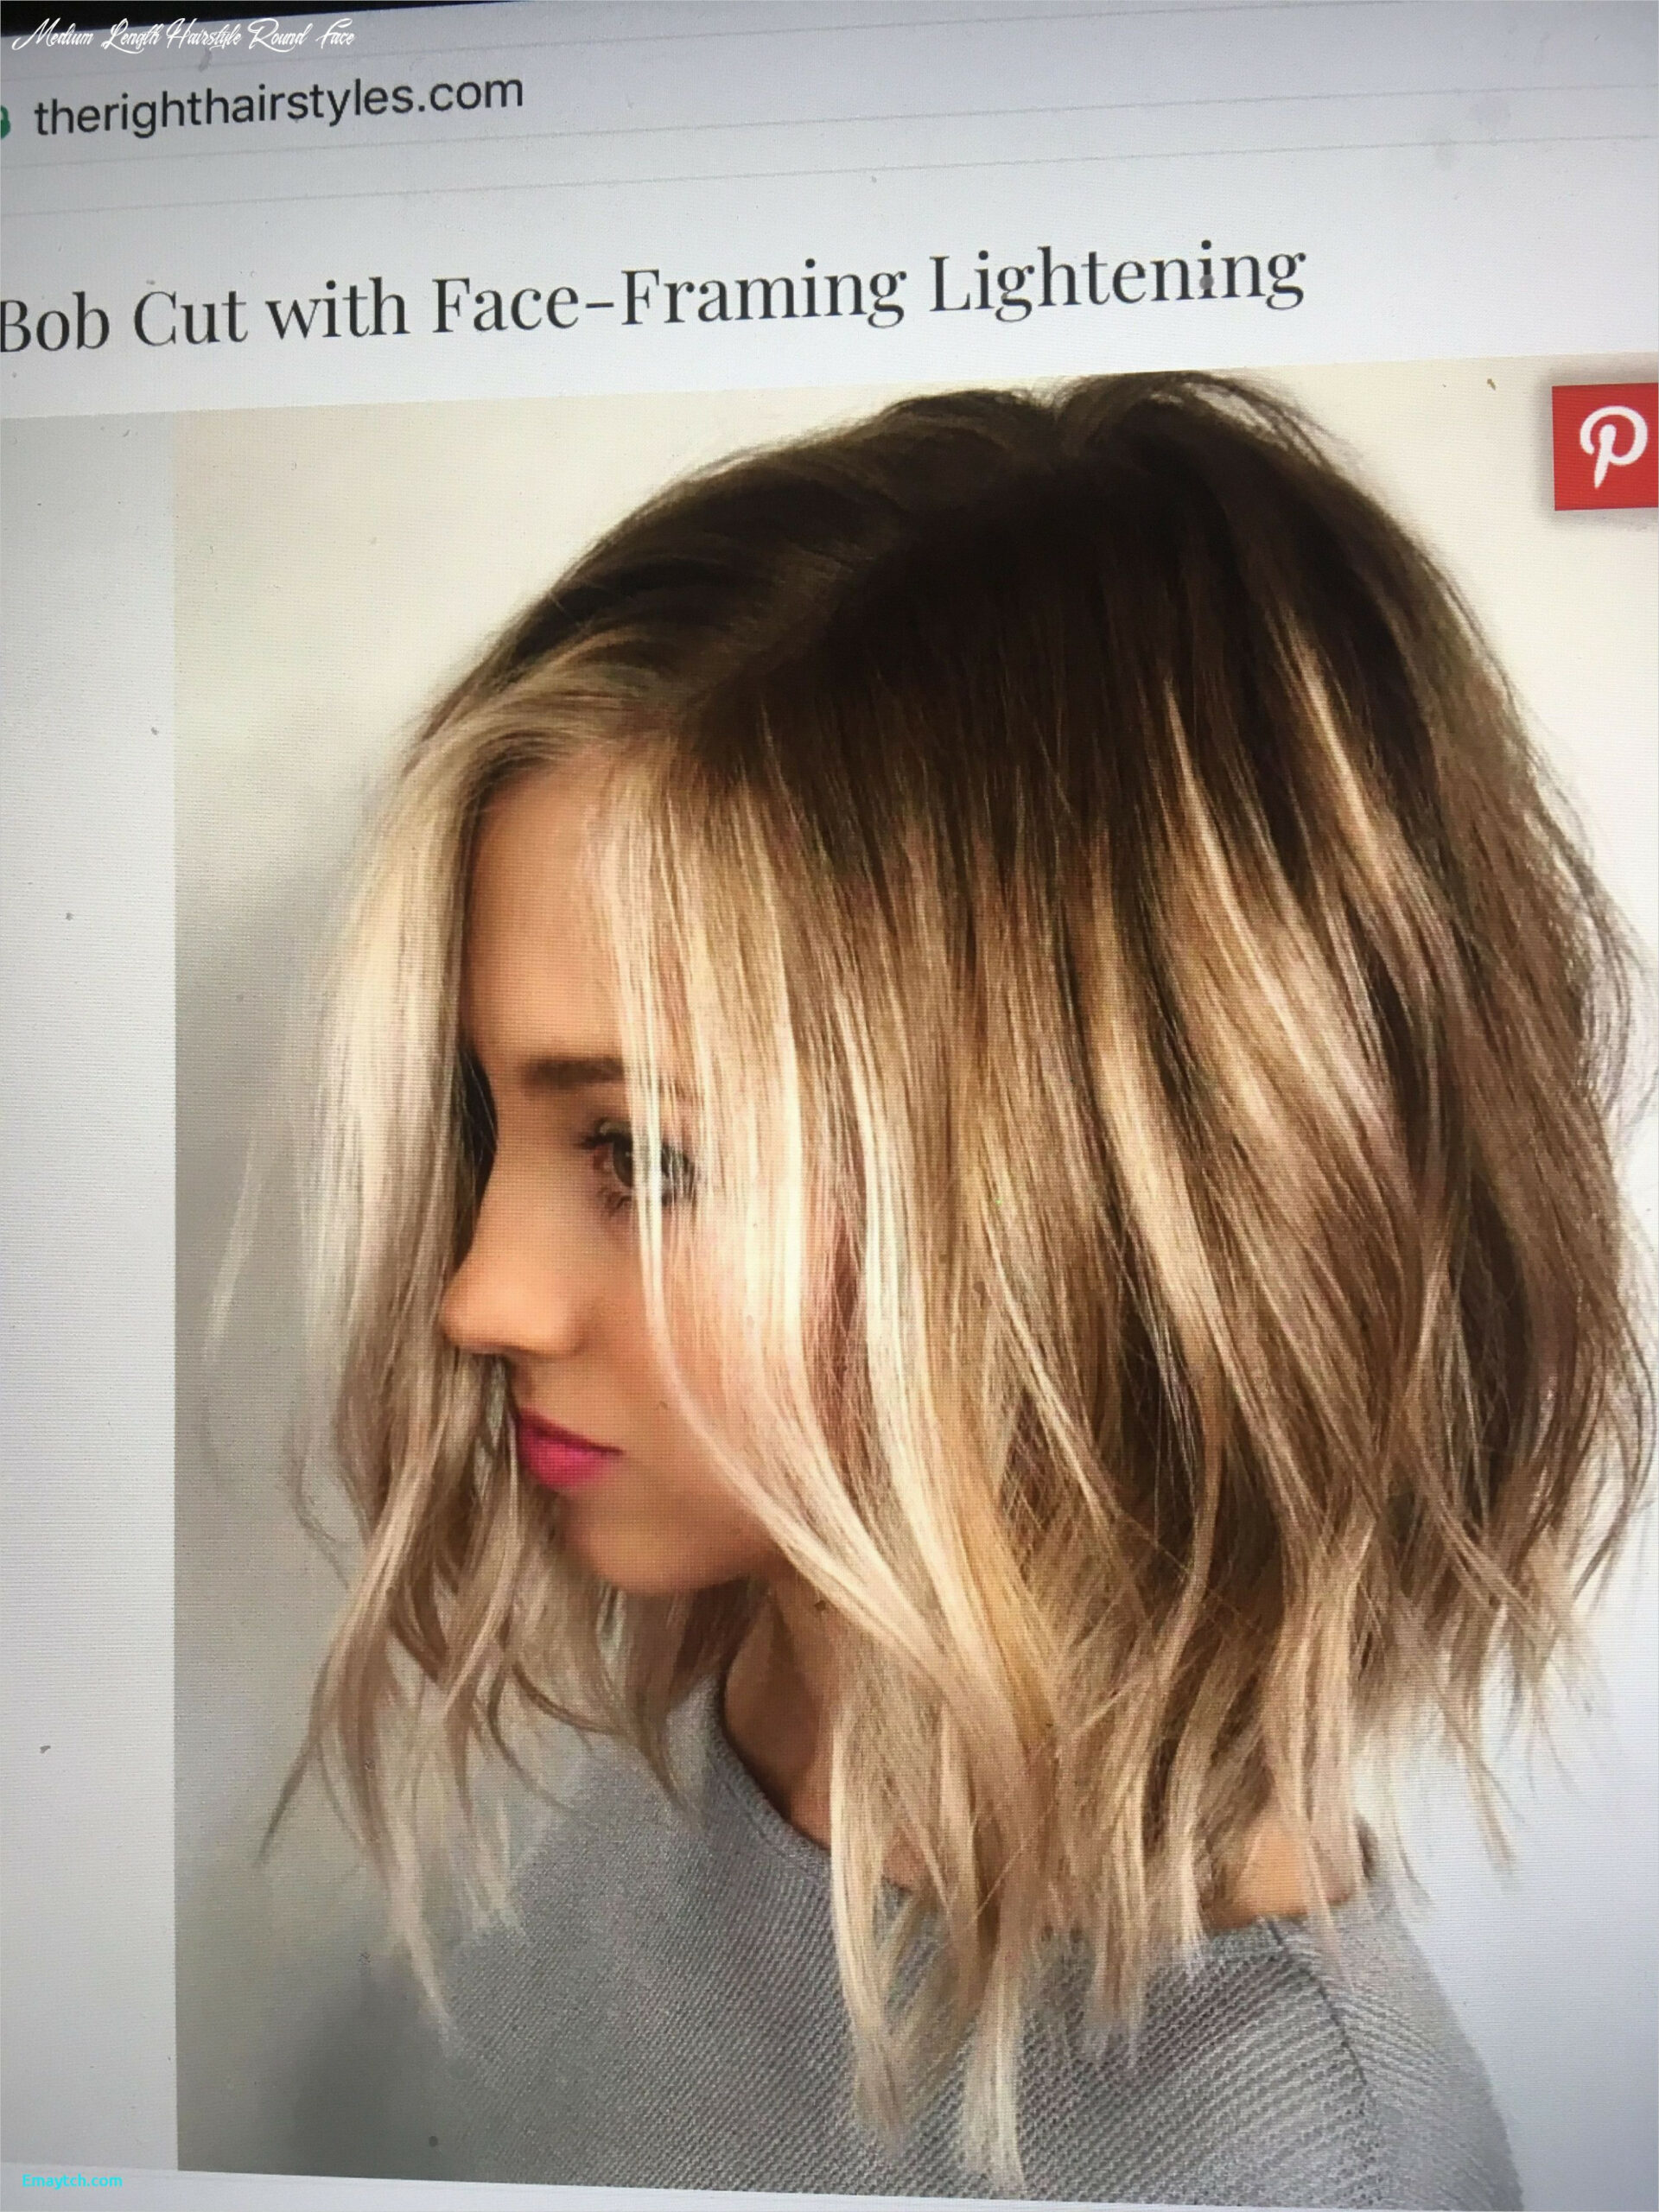 Pin on hair/accessories/nails medium length hairstyle round face